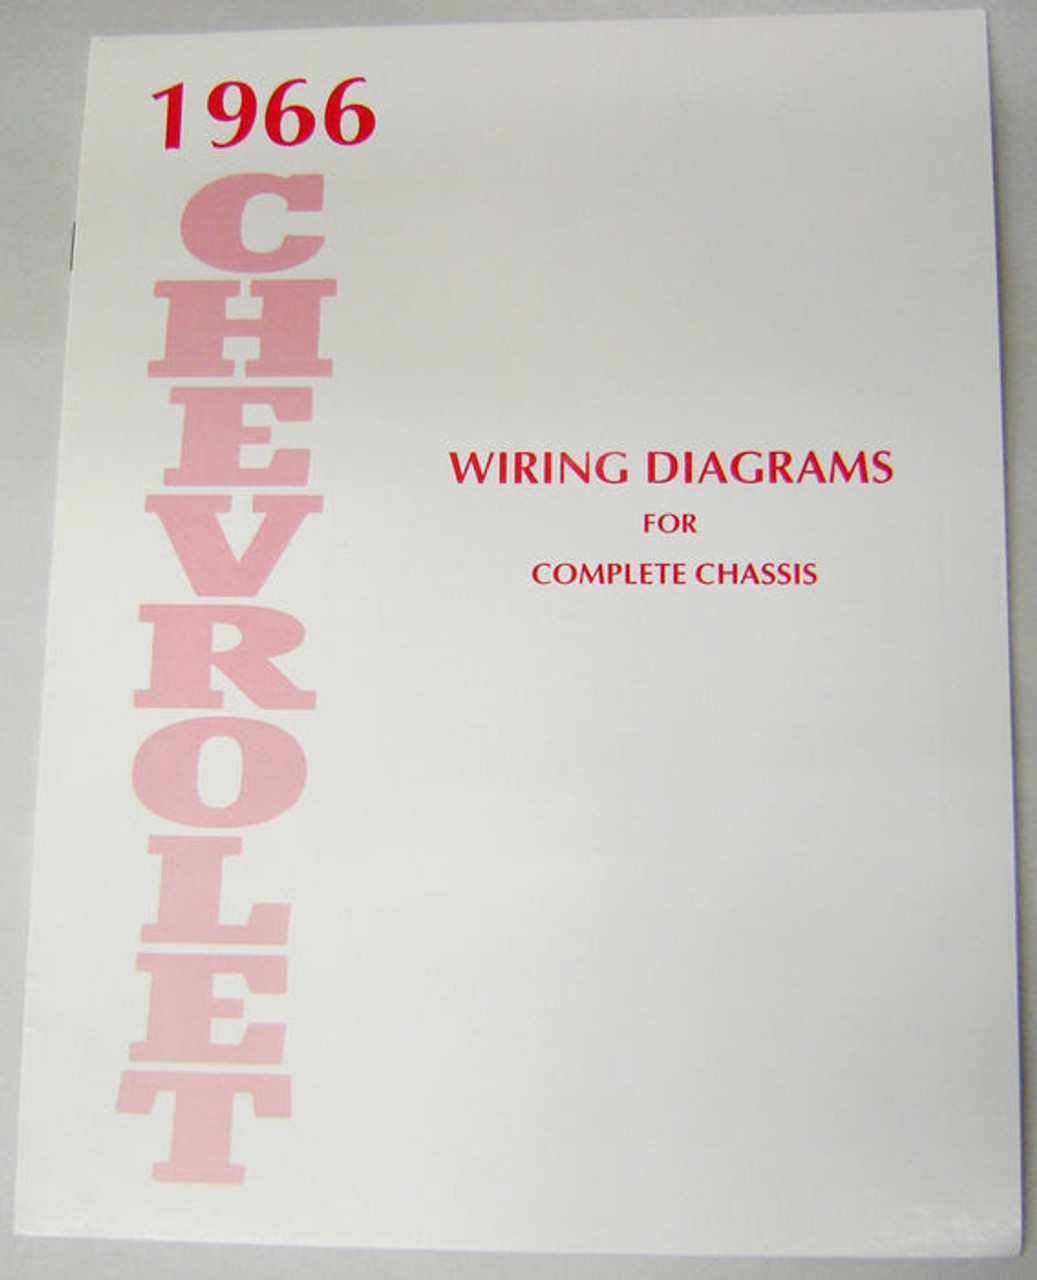 L1022_zpsjouiuker__97070.1443480941?c=2 66 1966 chevy impala electrical wiring diagram manual i 5 chevrolet 1966 impala wiring diagram at crackthecode.co